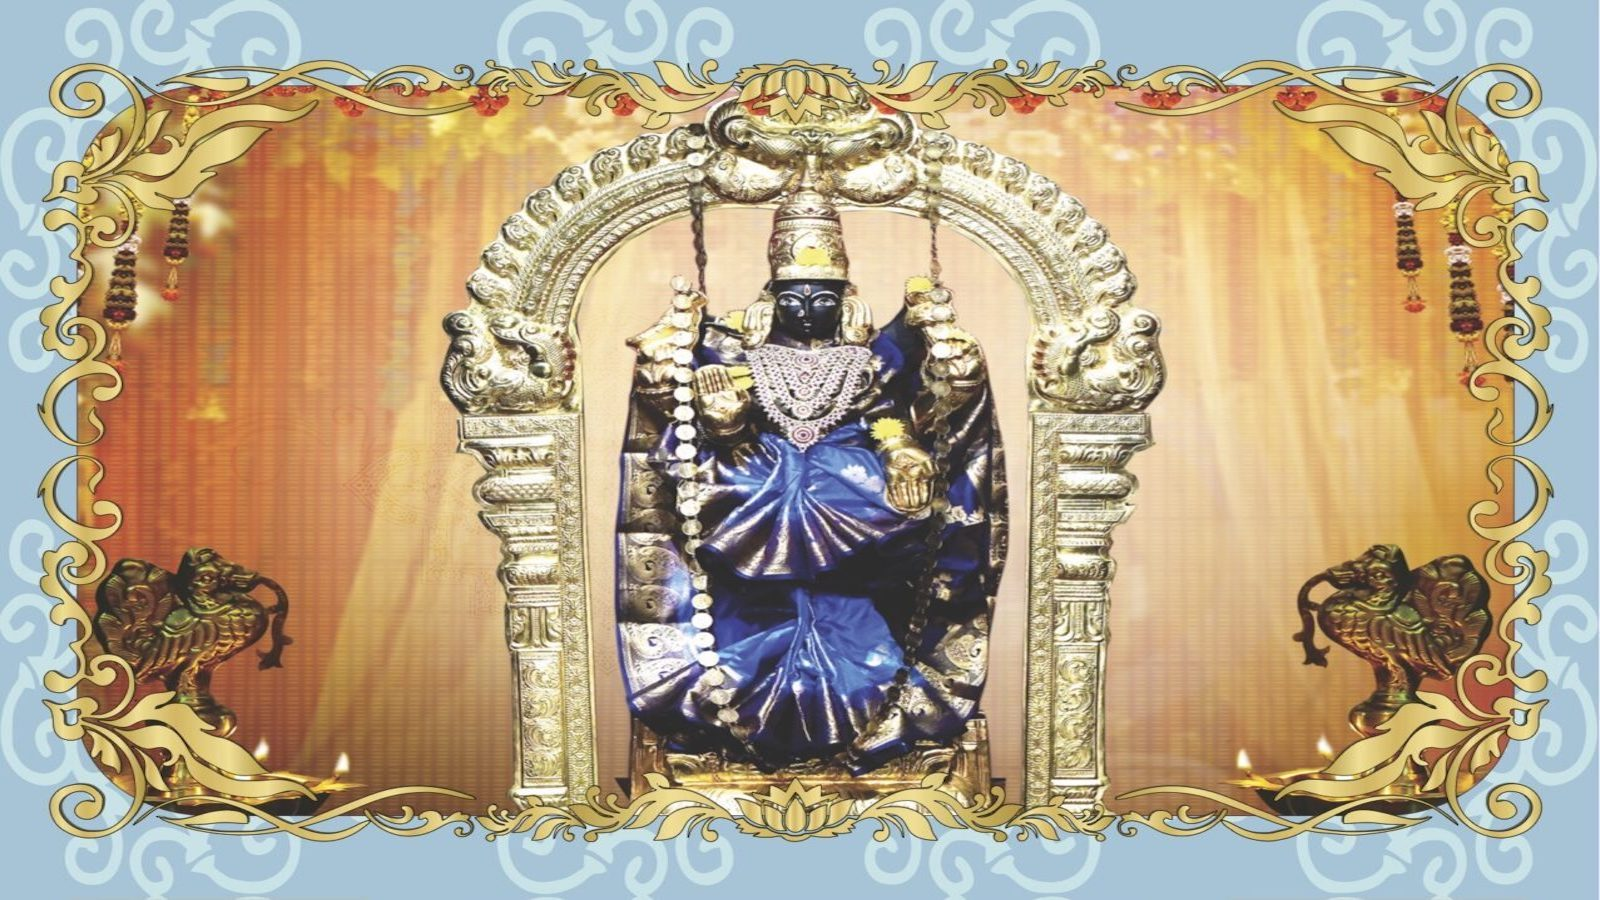 Vasavi Atmarpana Day – 02/13 @ 11 AM